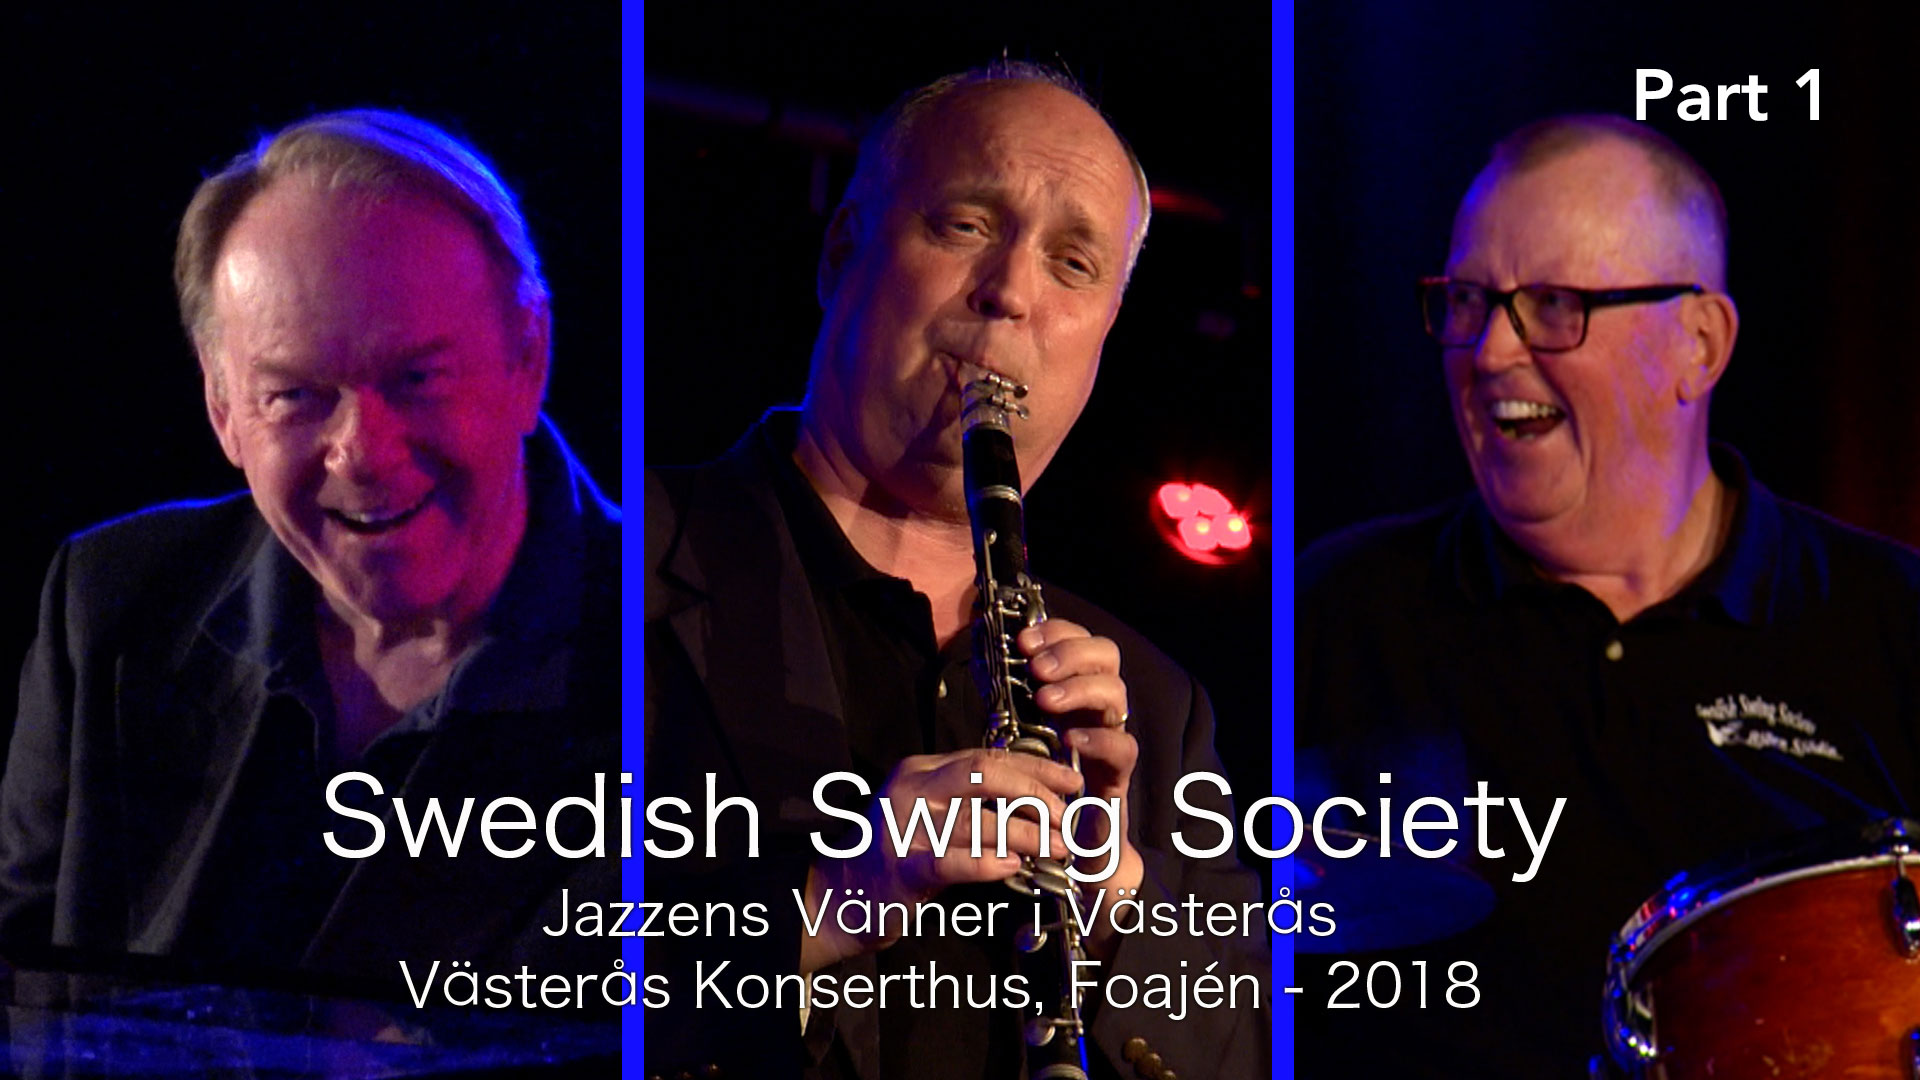 Swedish Swing Society